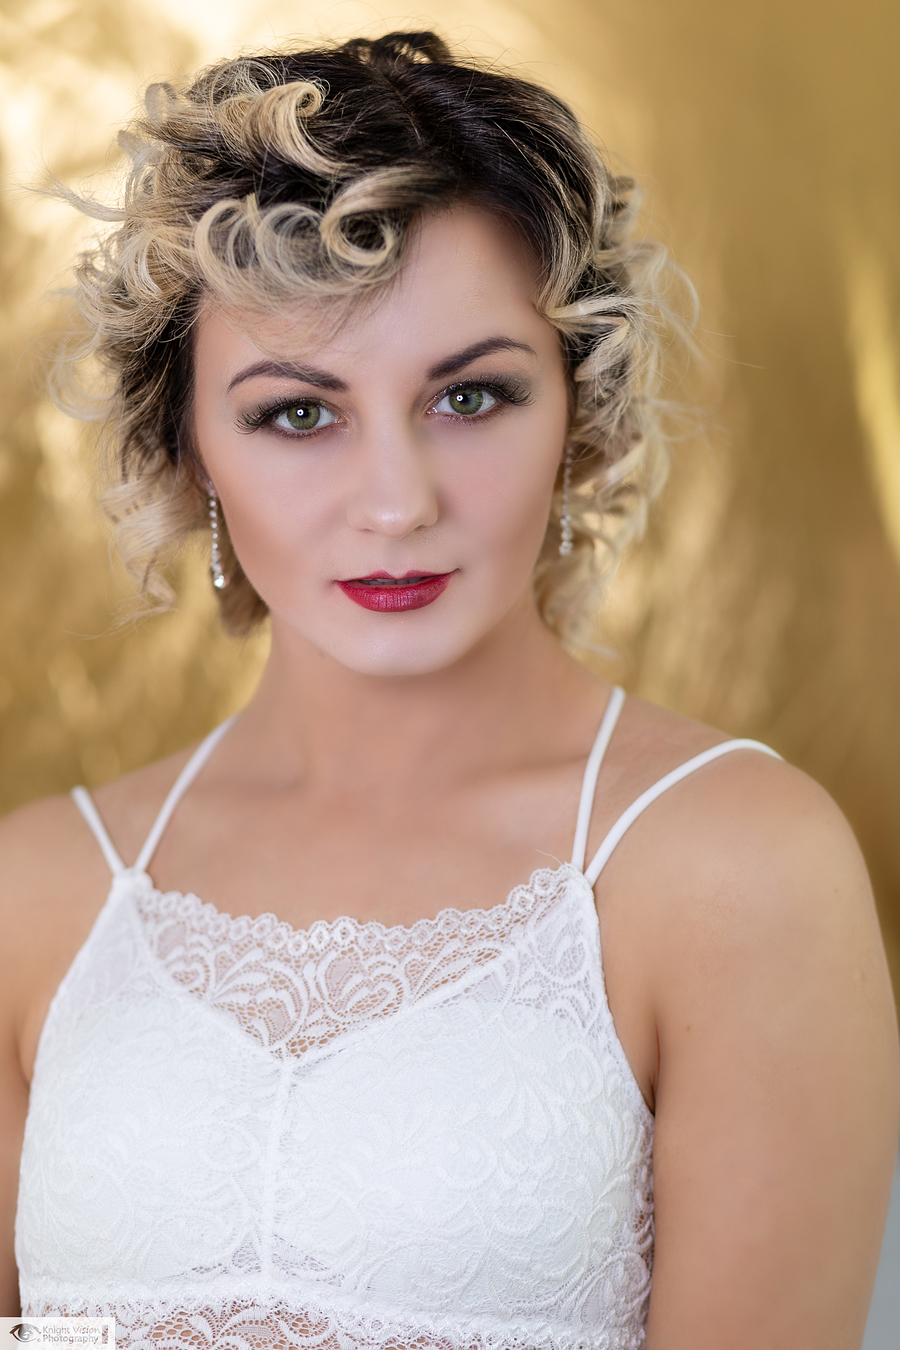 Blonde & Gold / Photography by Knight Vision Photography, Model AgnesGajewska, Taken at Knight Vision Photography / Uploaded 21st September 2019 @ 08:08 PM